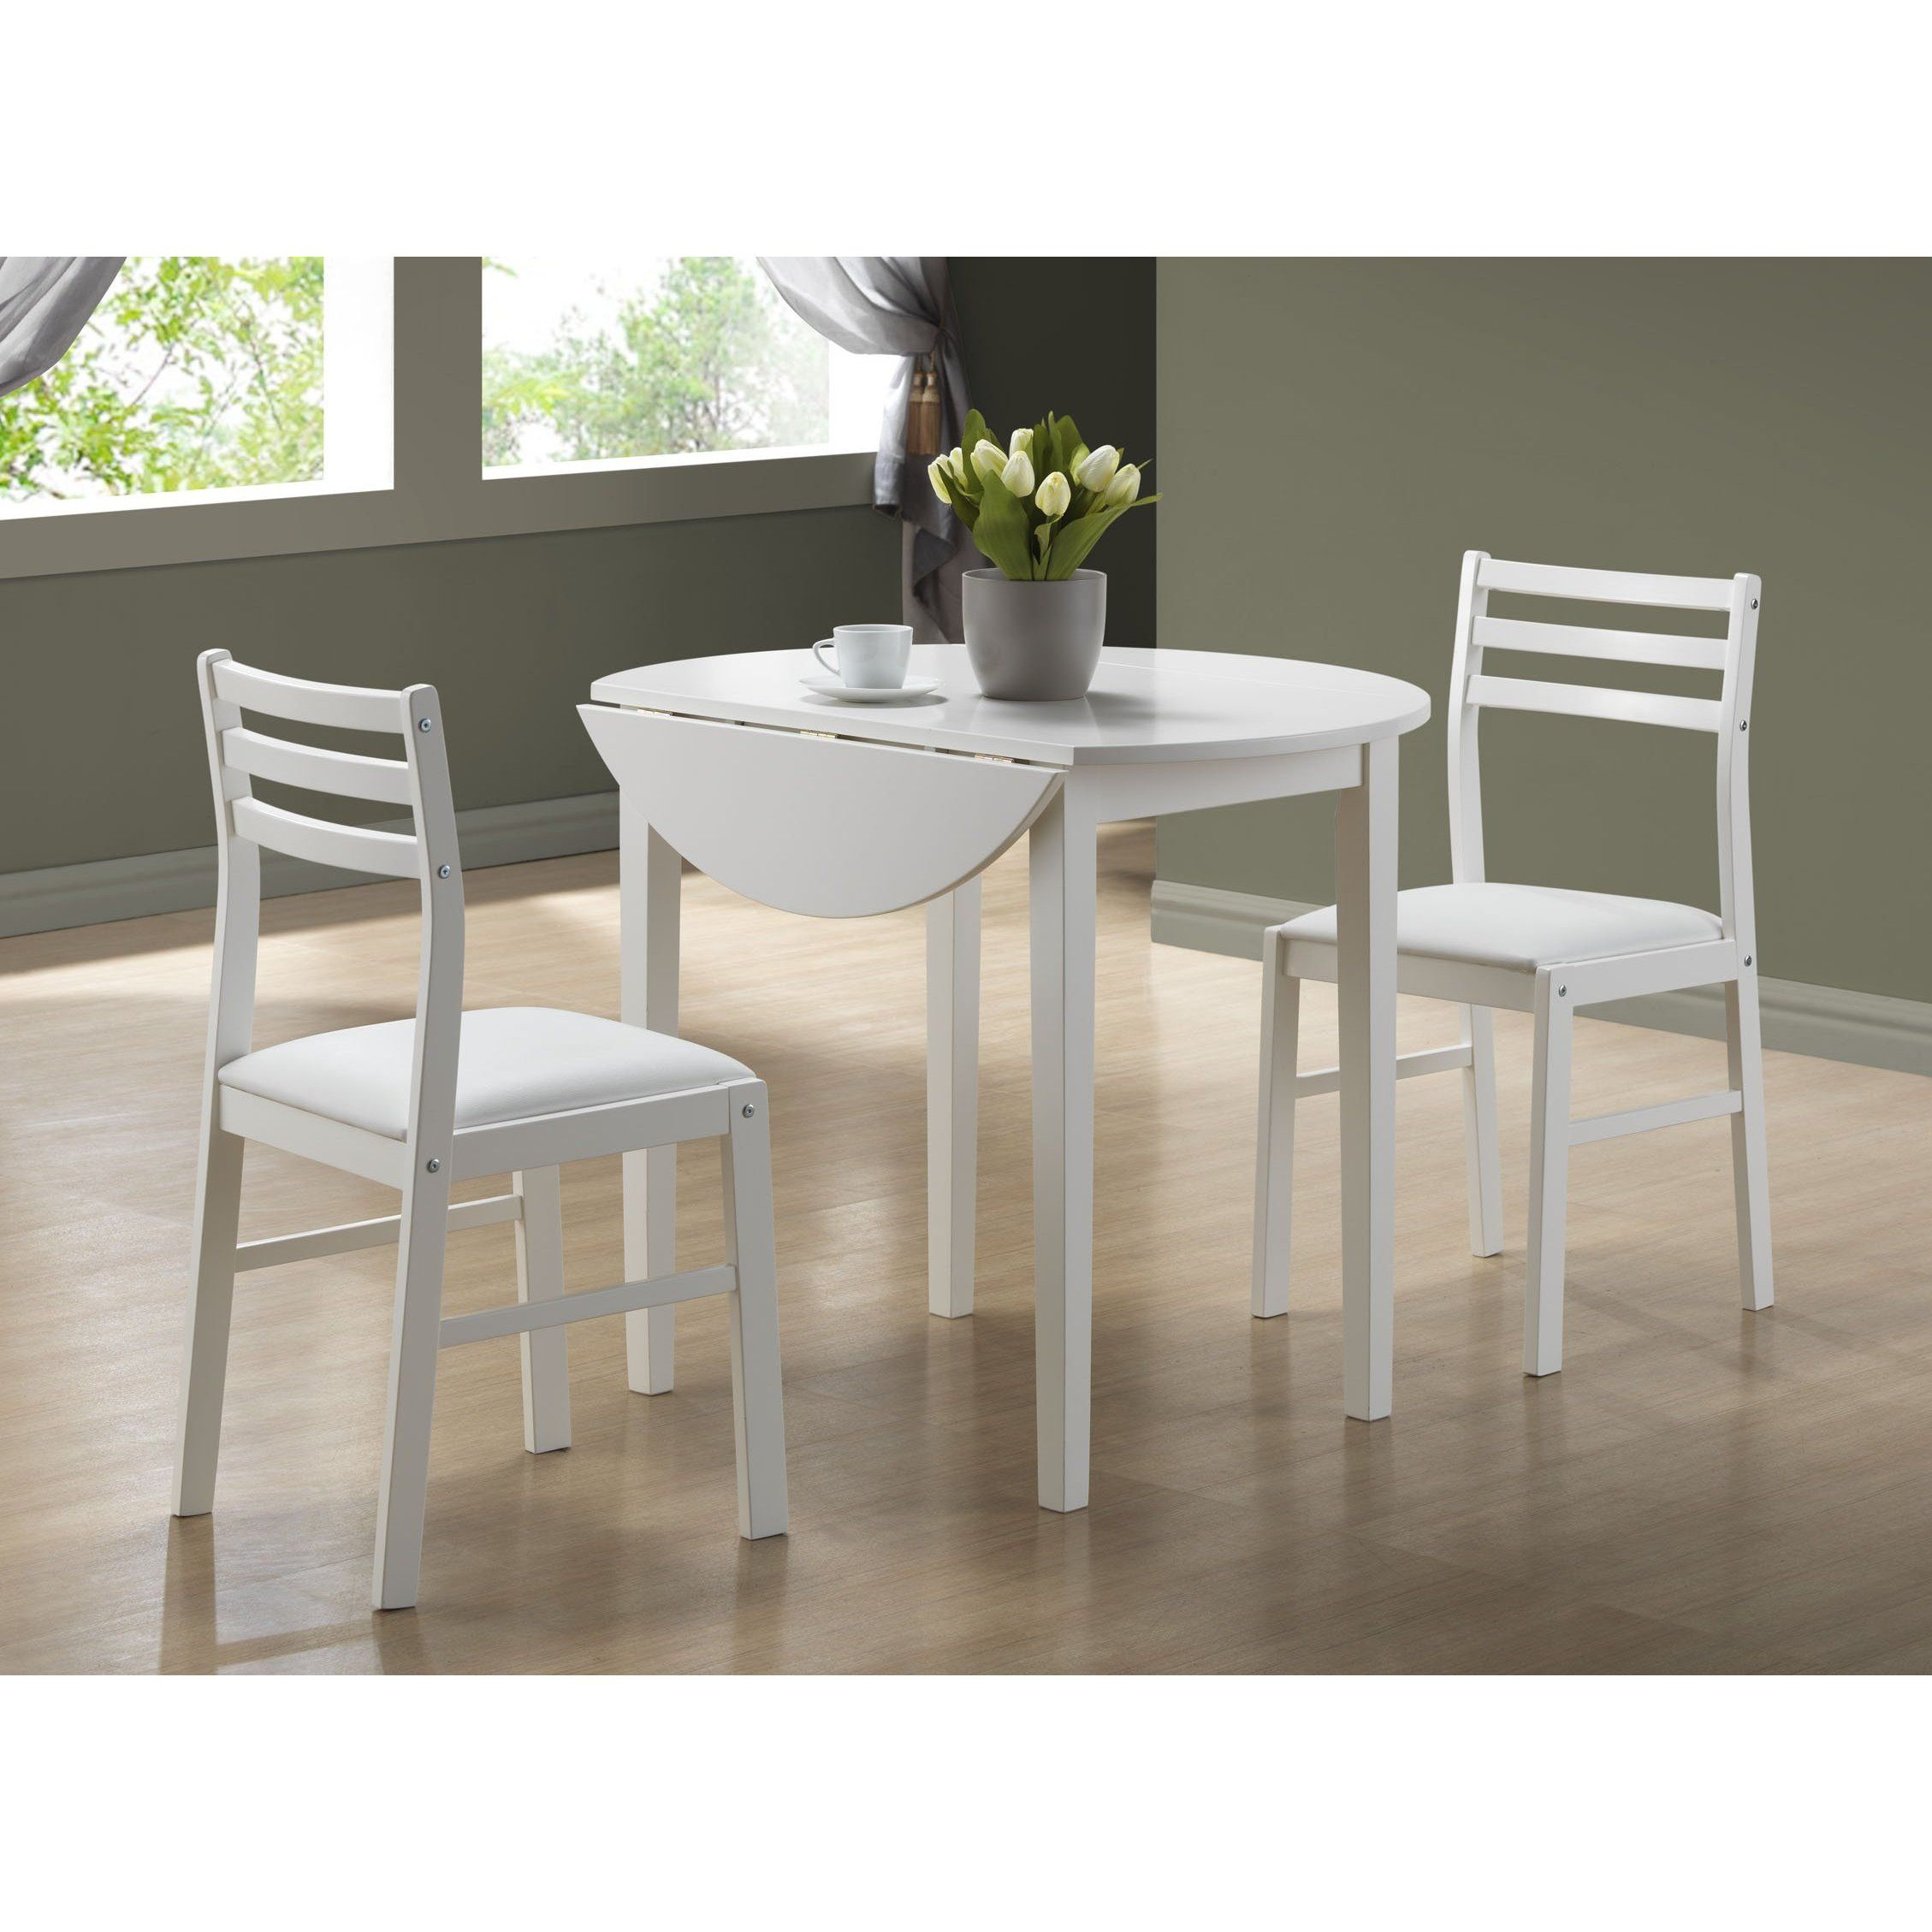 Delightful Monarch Specialties   White 3 Piece Dining Set With A 36 Inch Dia Drop Leaf  Table   I 1008   Home Depot Canada